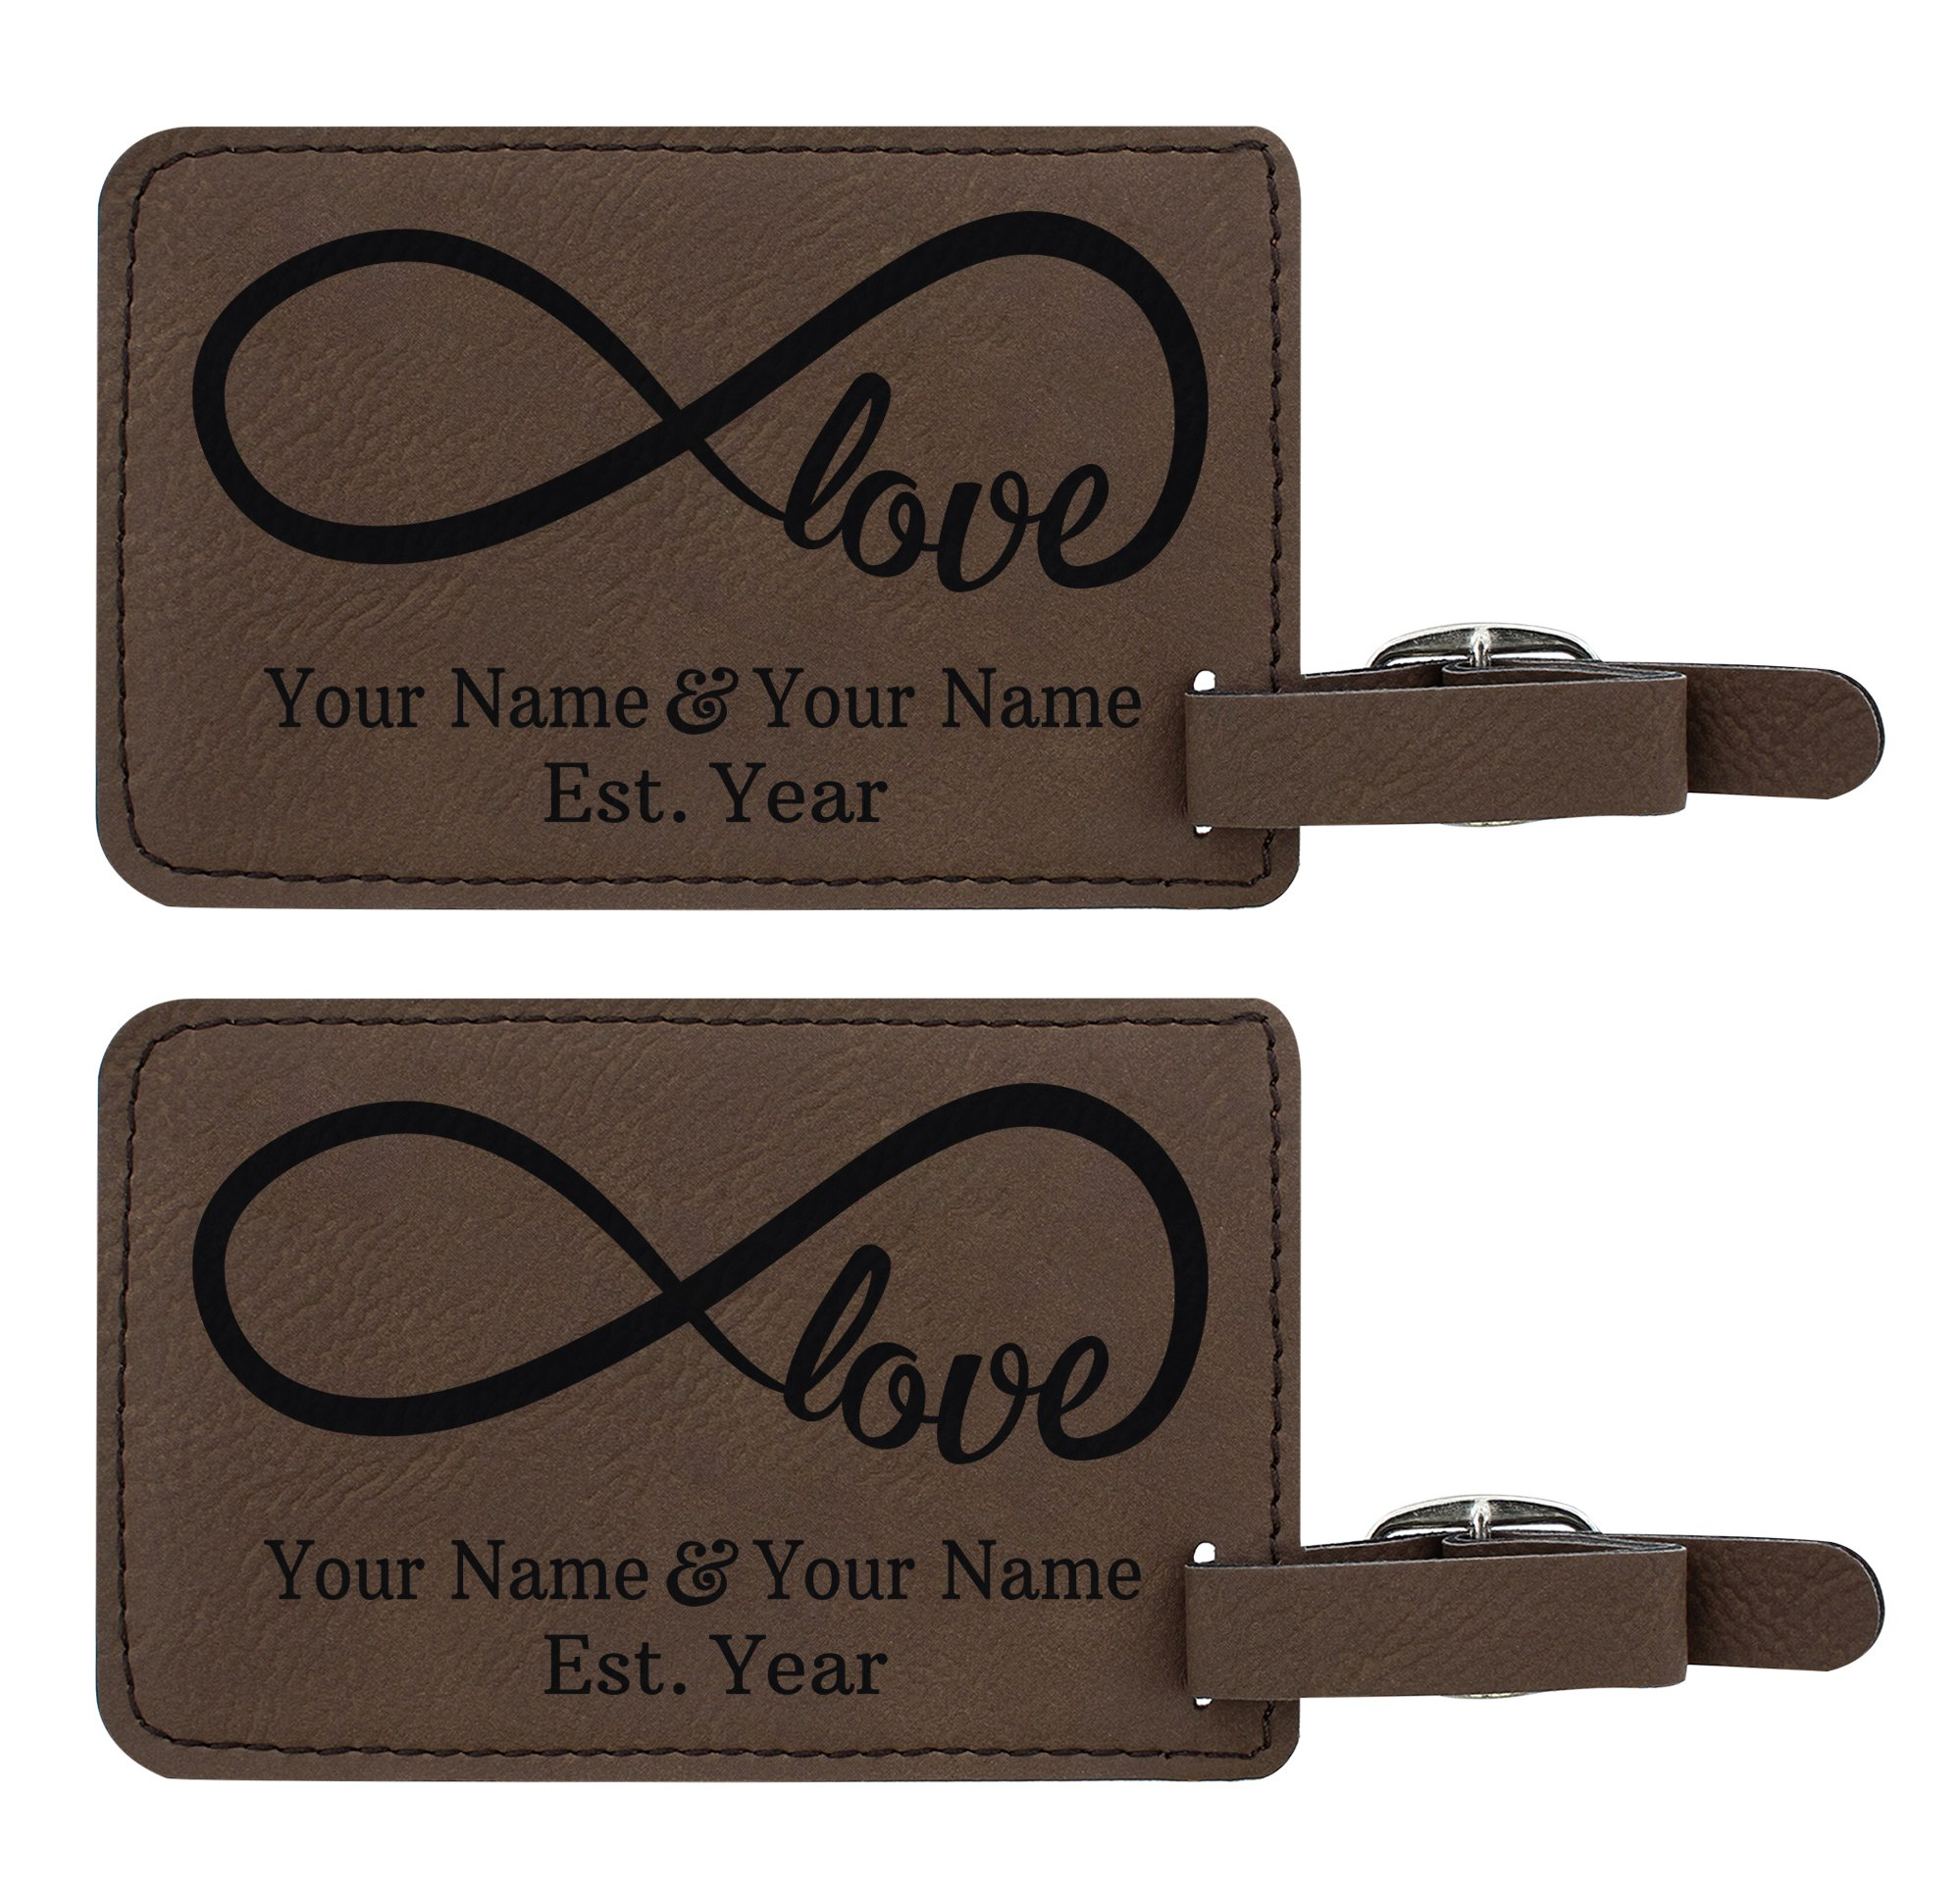 Personalized Couples Gifts Custom Names & Date Infinite Love Personalized Engagement Gifts for Honeymoon 2-pack Laser Engraved Leather Luggage Tags Brown